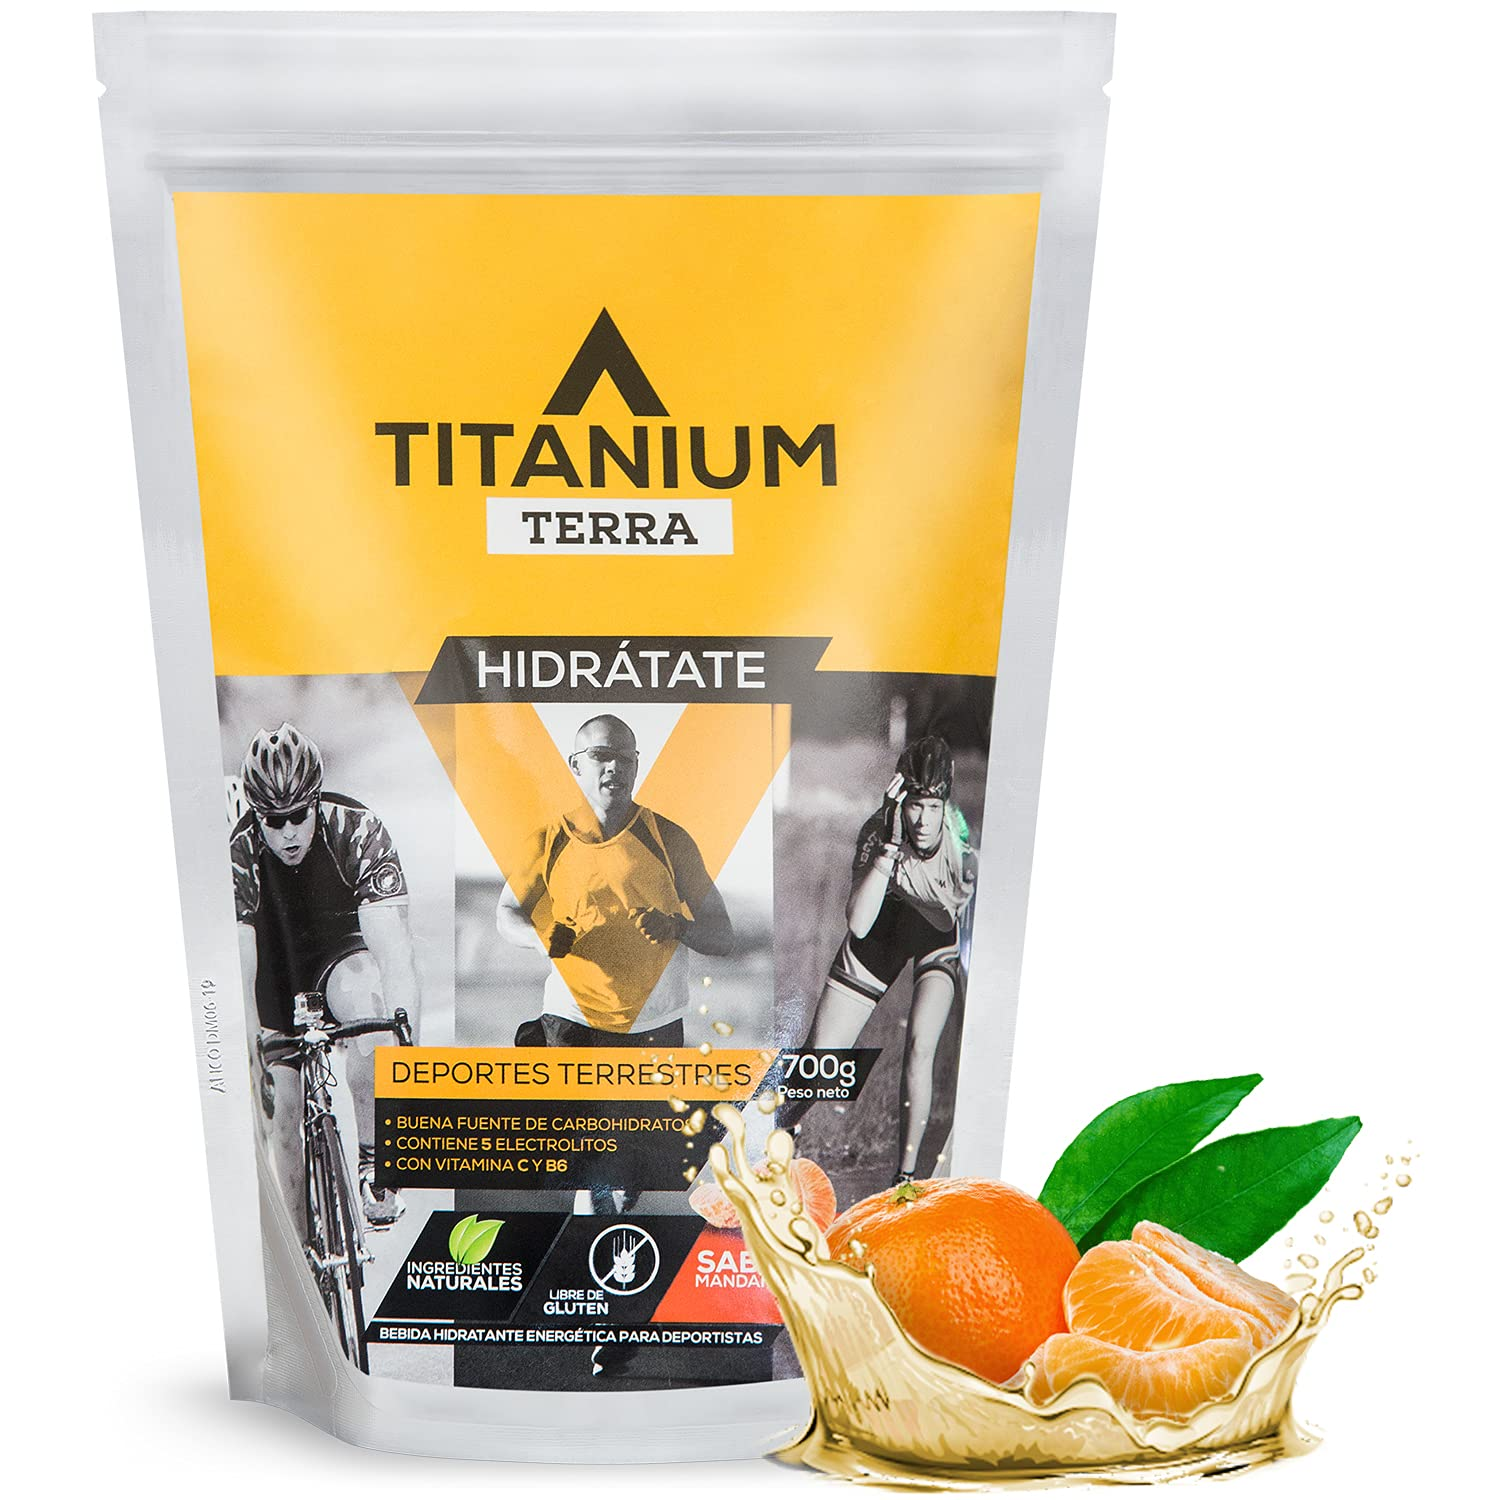 TITANIUM TERRA Be super welcome Electrolyte Powder Outlet SALE Hydration F With Carb Pack Mix